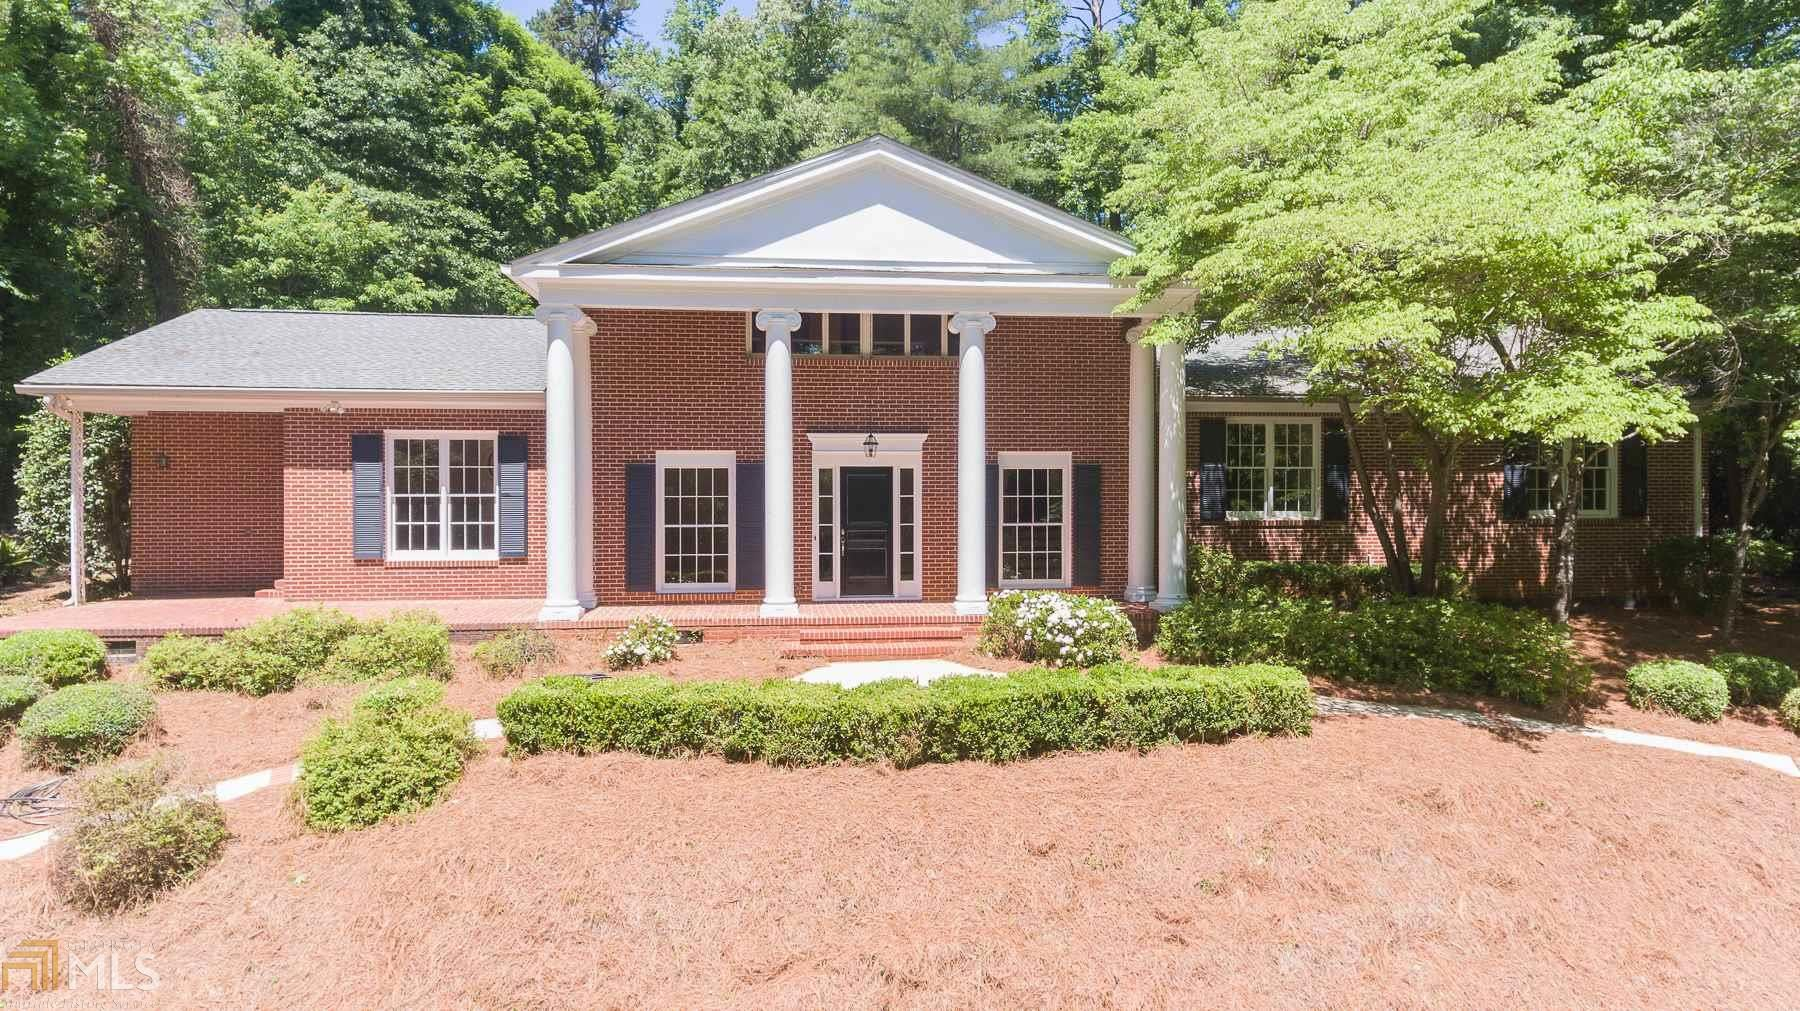 Photo for 520 Fortson Rd, Athens, GA 30606 (MLS # 8584244)